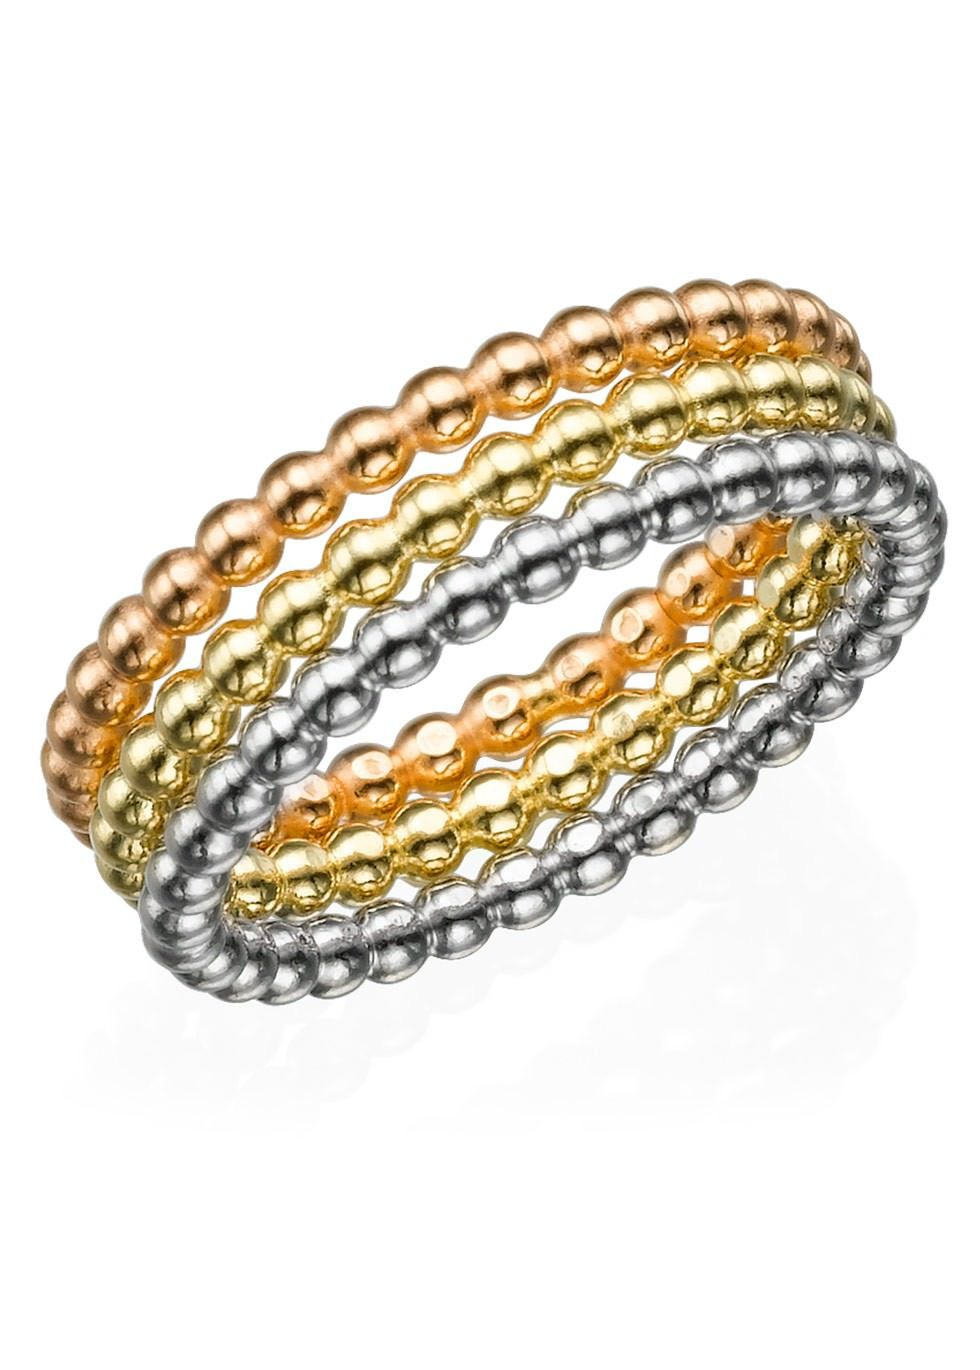 My Only One - Dotted Eternity Rings Set Silver & Gold Filled - 3 Bands - Size M My Only One ID: 202-02-121-02 Thickness: 2 mm - 0.08  Material: Sterling Silver, Gold-Plated & Rose Gold  #rosegold #gold #silver #elegant #modli #modlifashion #modest #gift #trendy